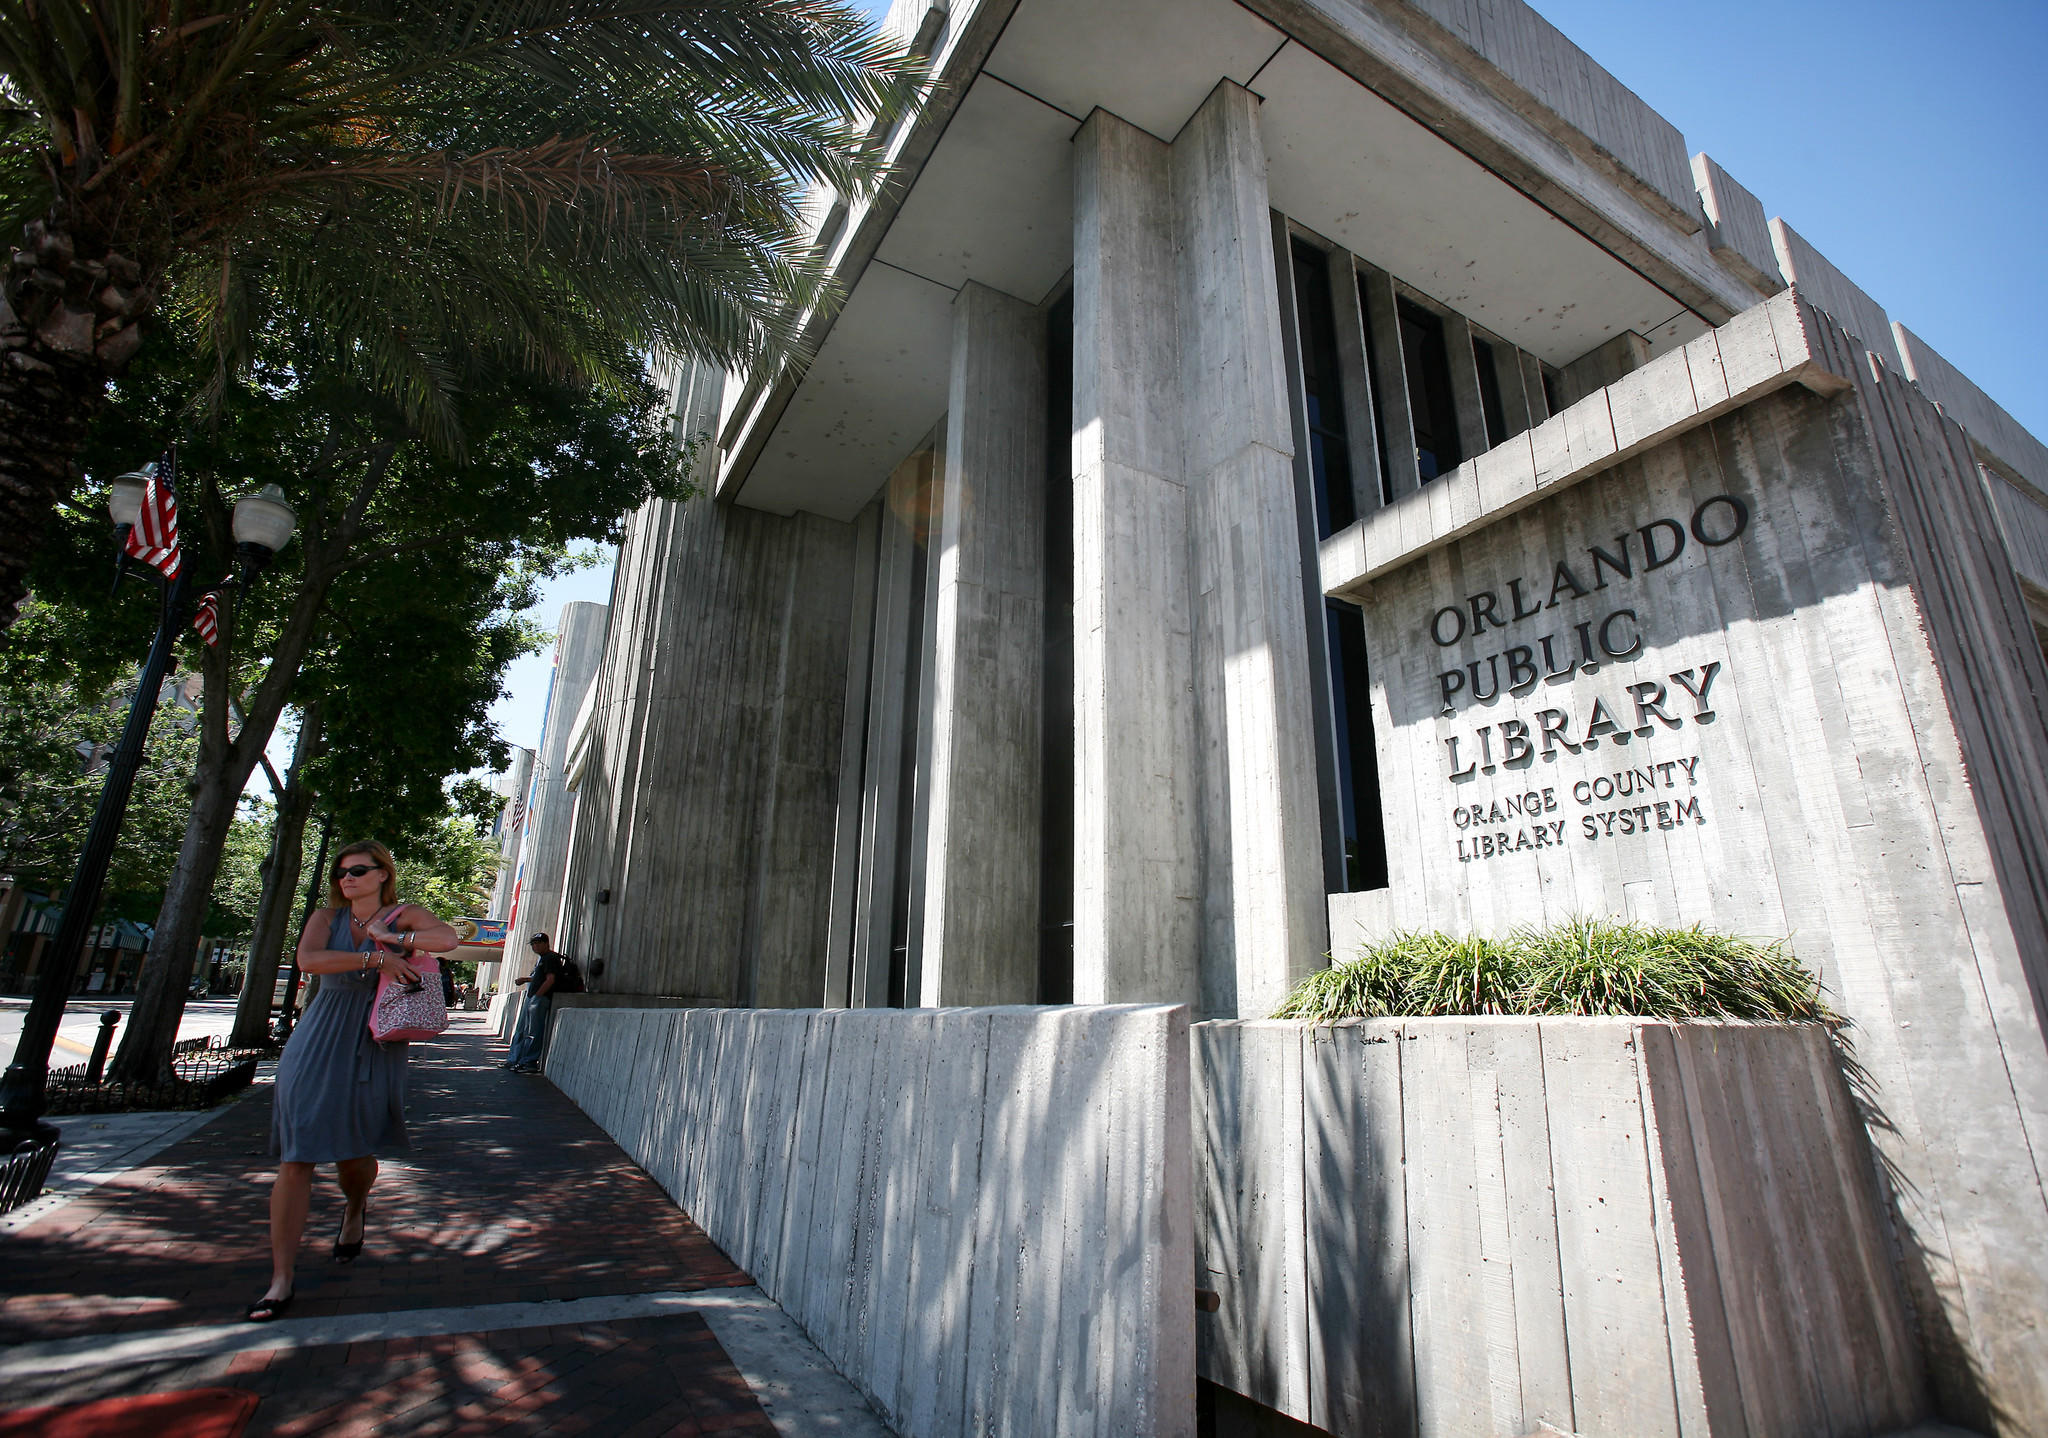 The Orange County Public Library downtown Orlando photographed April 4, 2012.